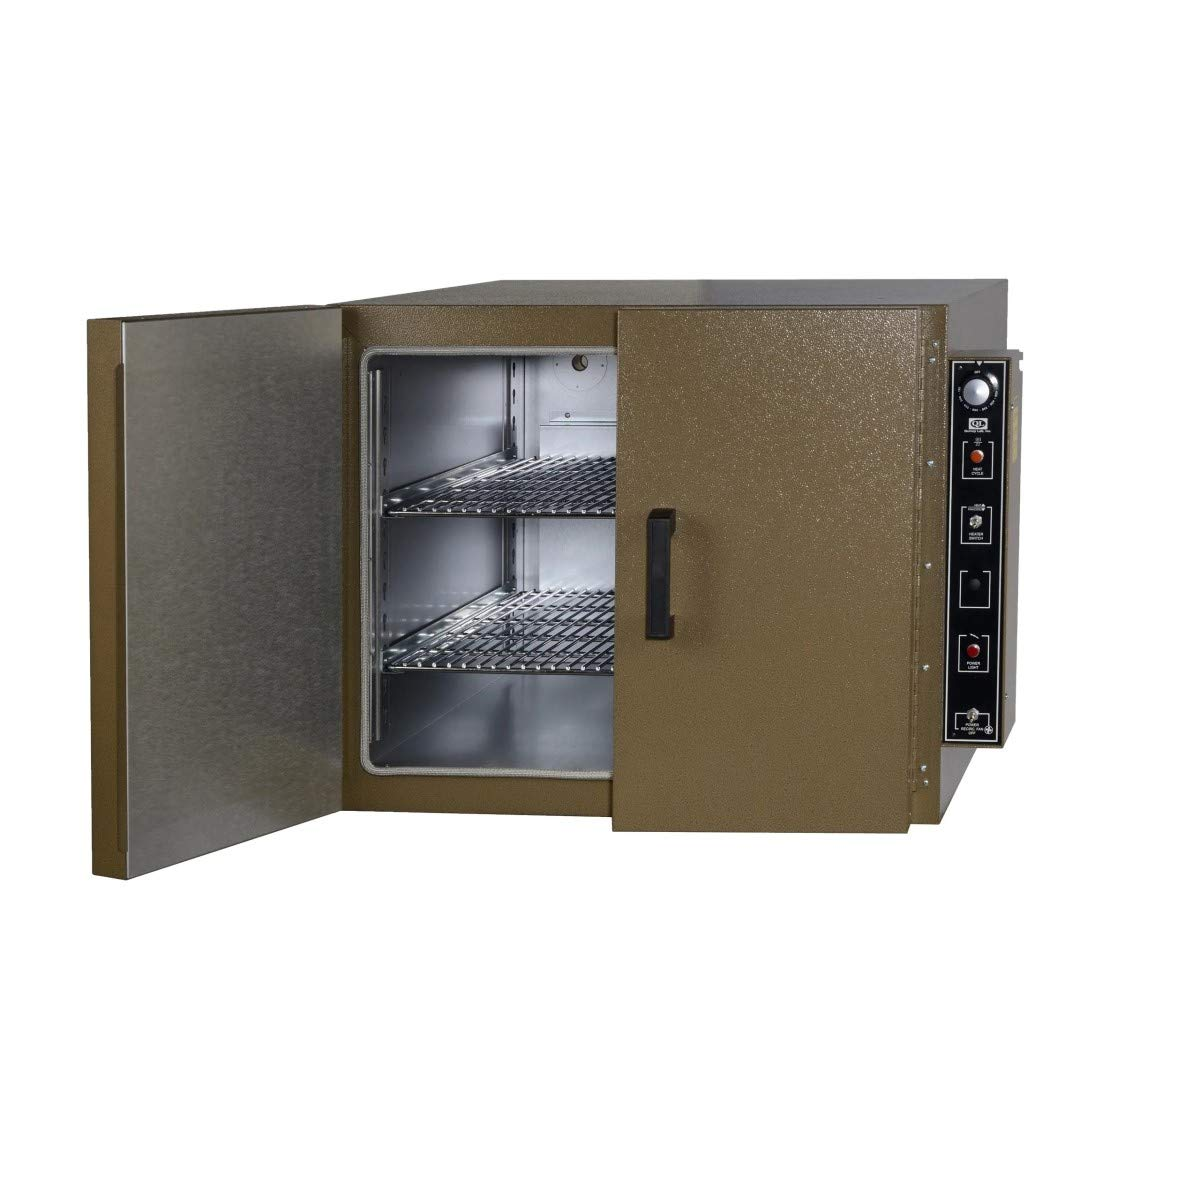 Quincy SALENEW very popular! Lab 51-550S Steel NEW before selling ☆ Bench 6.6 230V Cubic feet Oven